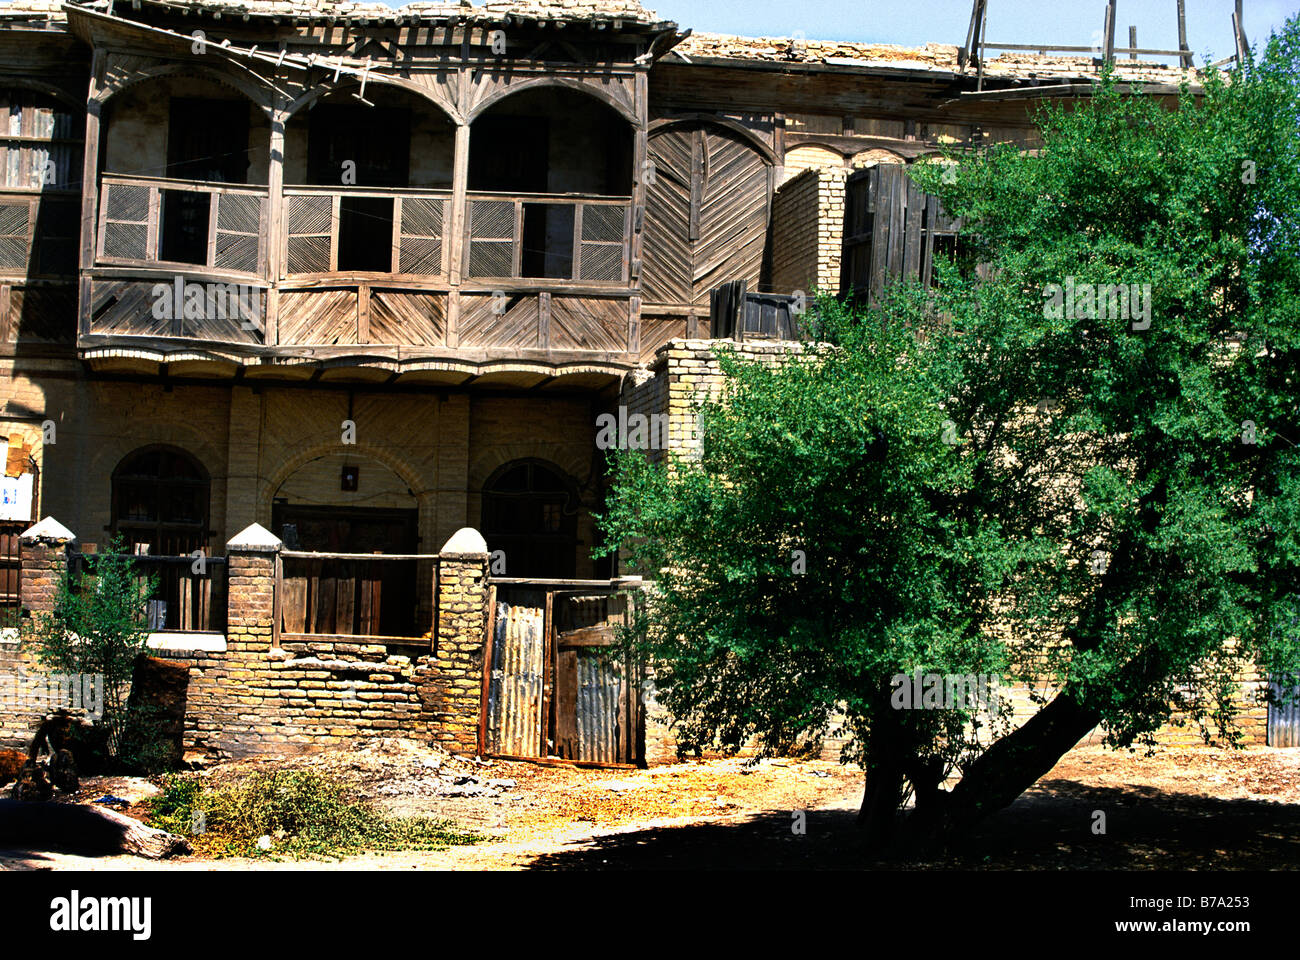 Basrah Iraq Old Wooden Merchants Houses From Ottoman Period - Stock Image